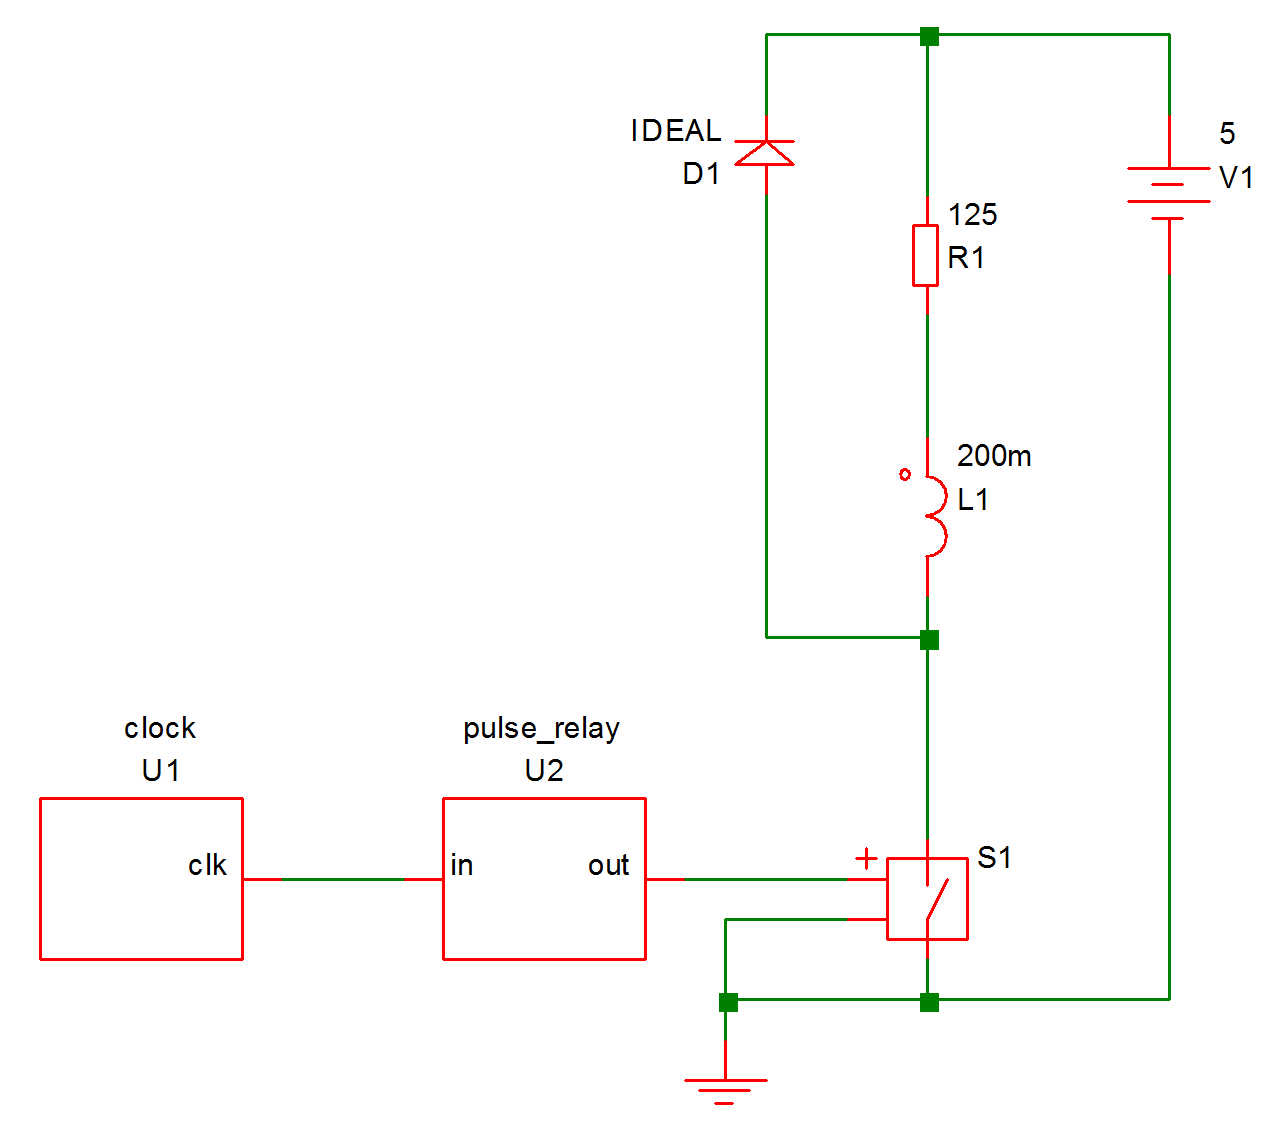 User Manual Tutorial Switches And Relays Electronic Circuits Diagram This Circuit Pulses A Relay For 10ms Every 100ms Driven By 100khz Clock The Coil Is Modelled L1 R1 While D1 Freewheel Diode